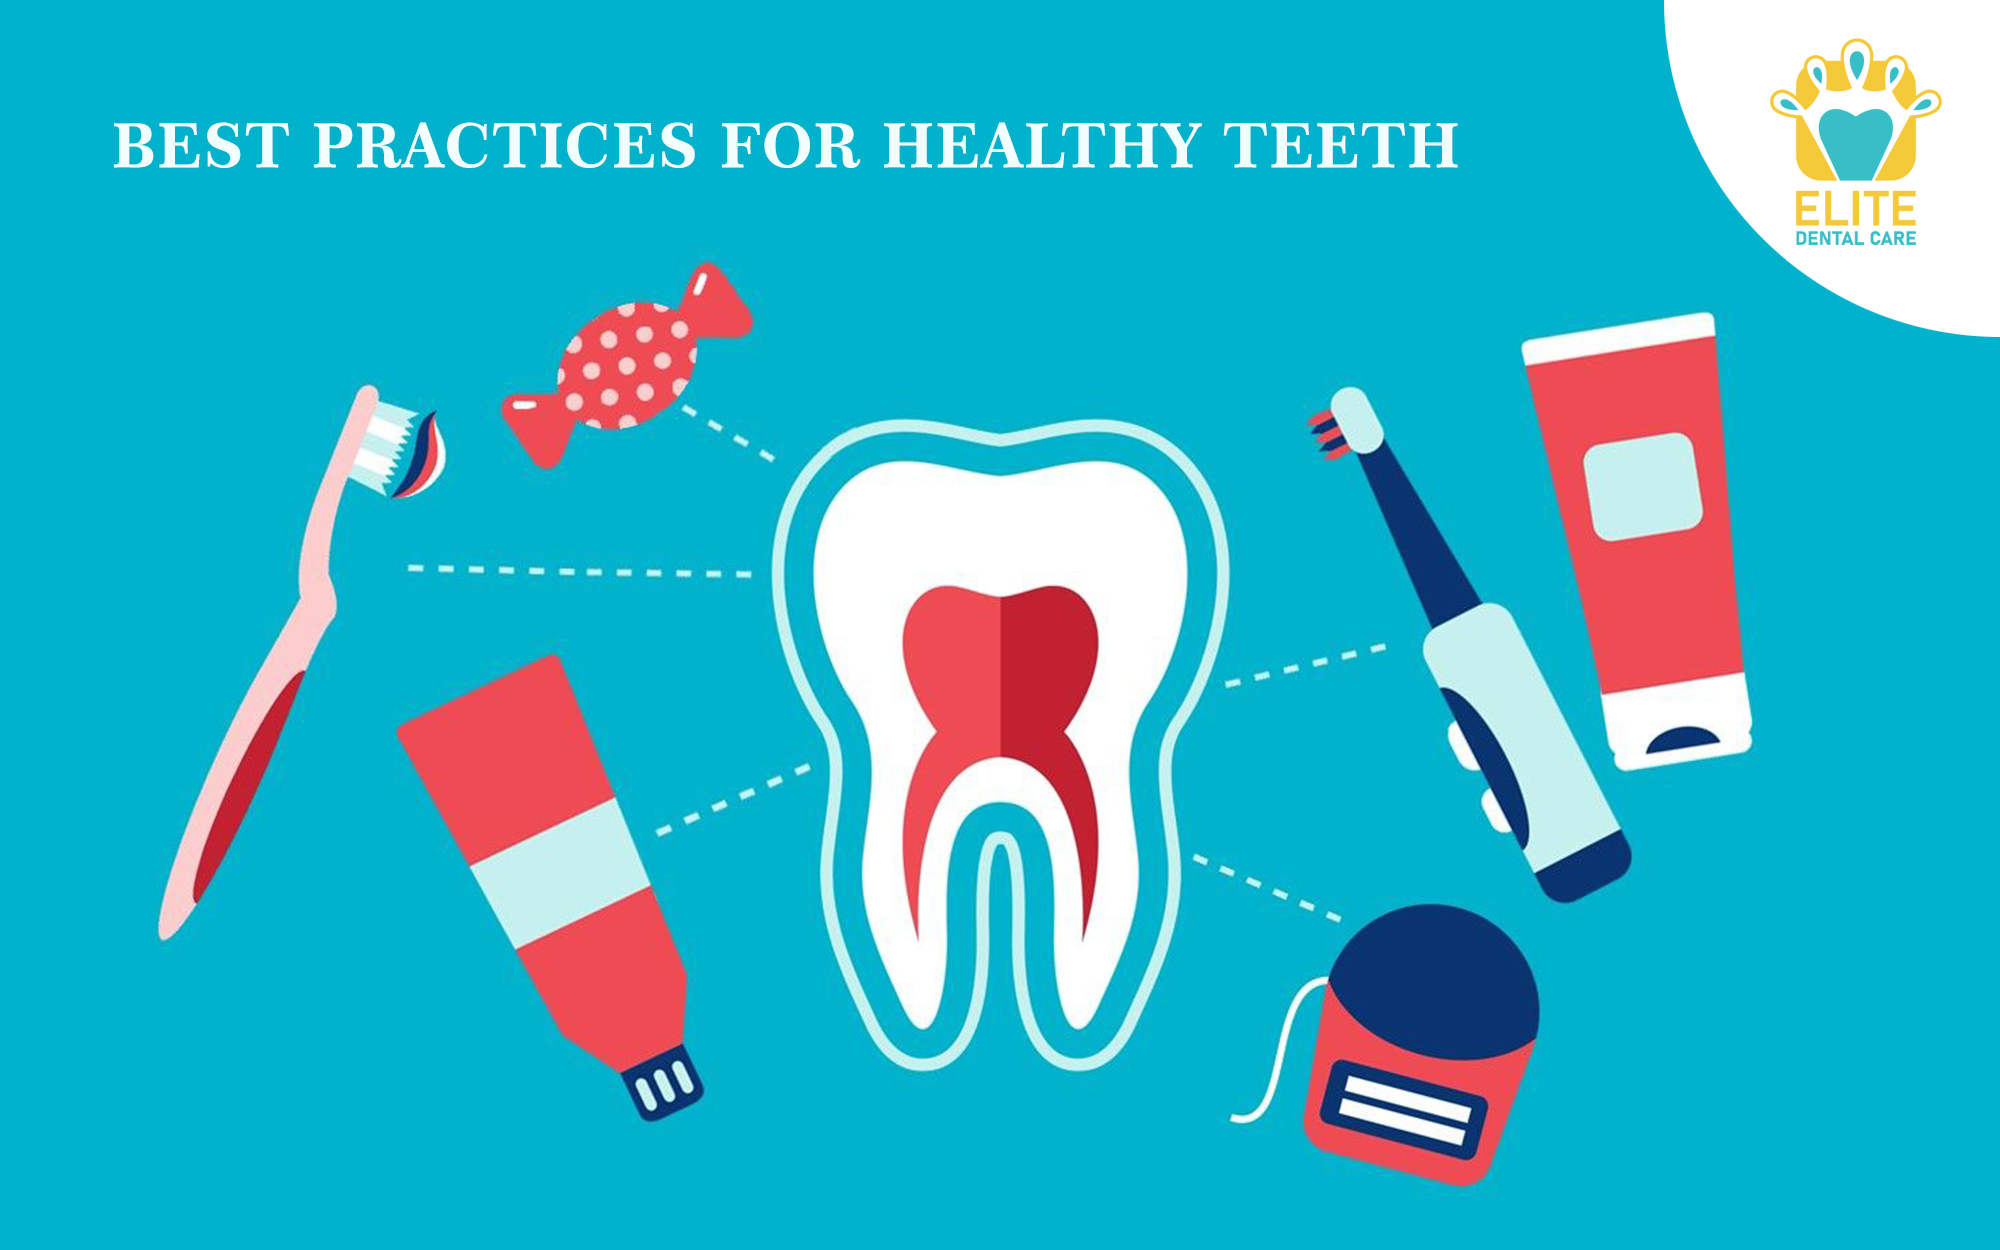 BEST PRACTICES FOR HEALTHY TEETH